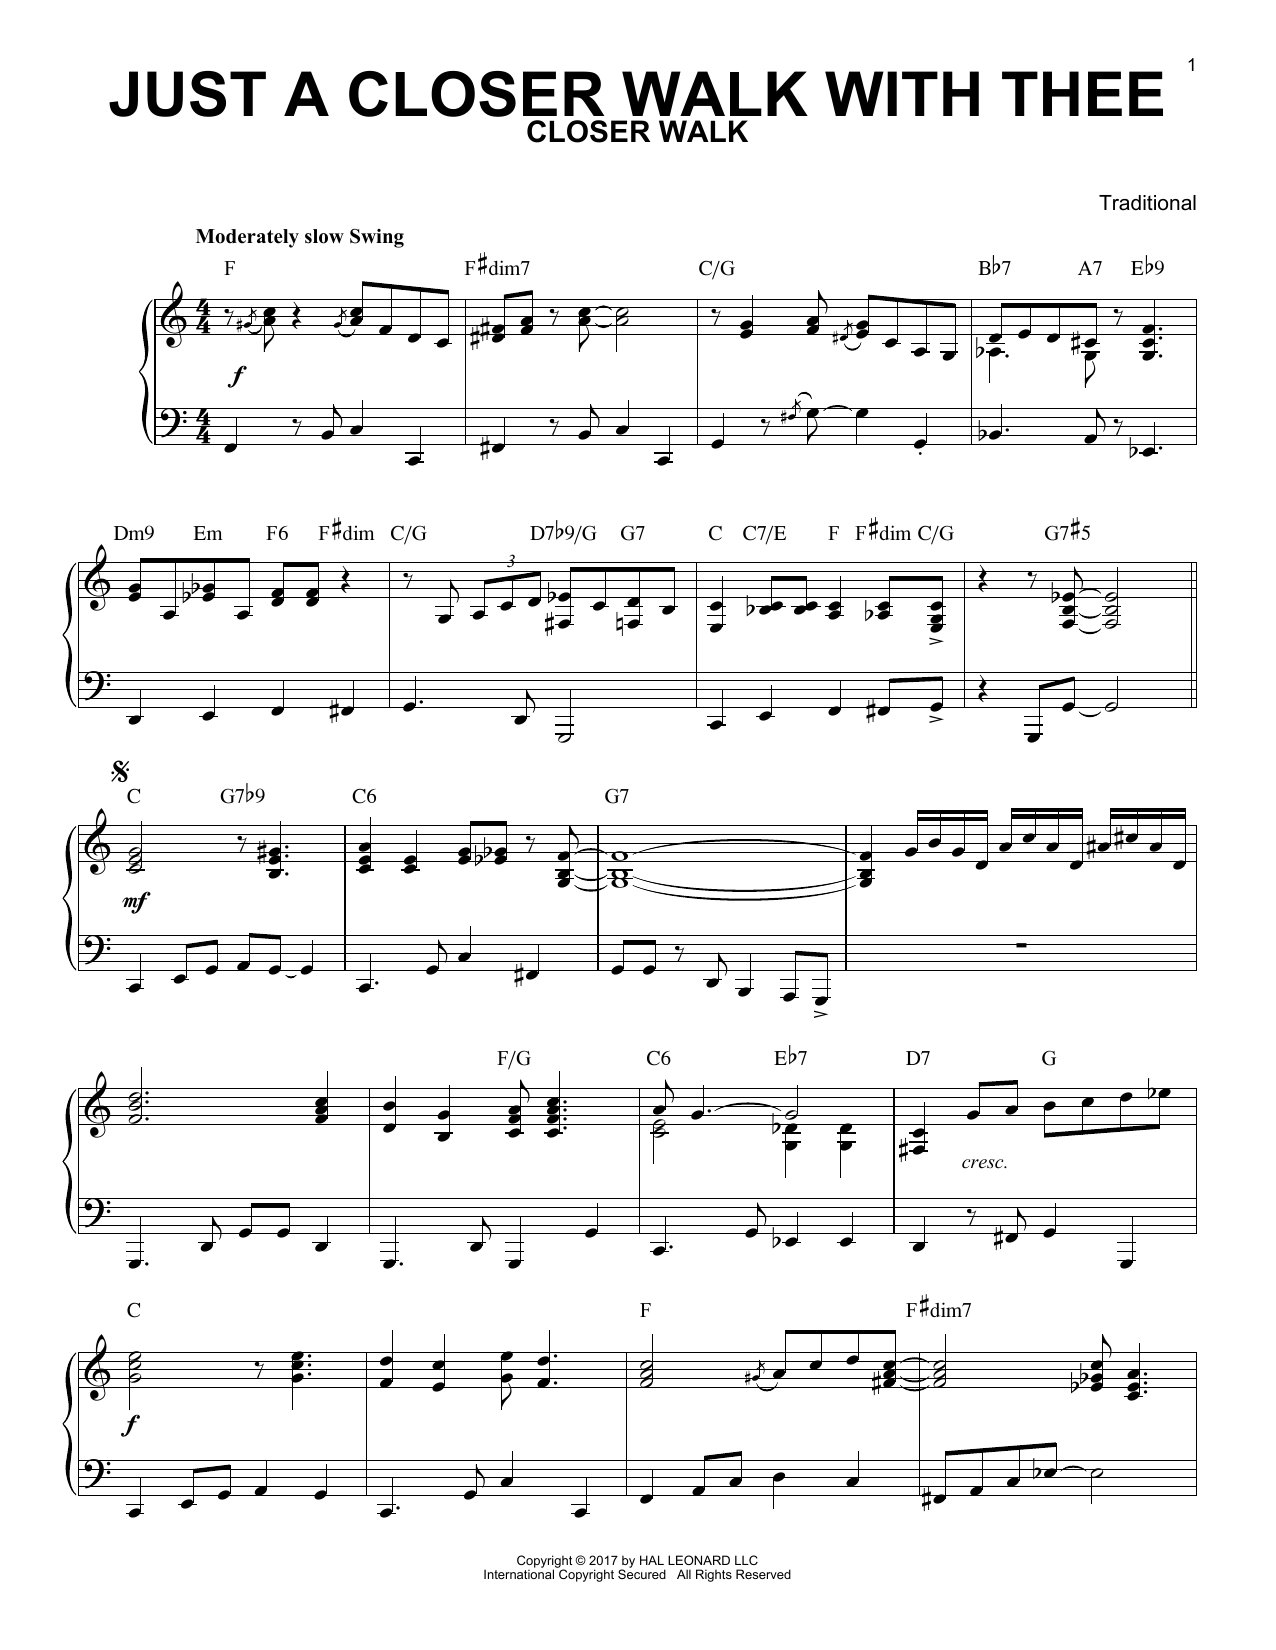 Traditional Just A Closer Walk With Thee [Jazz version] sheet music notes and chords. Download Printable PDF.